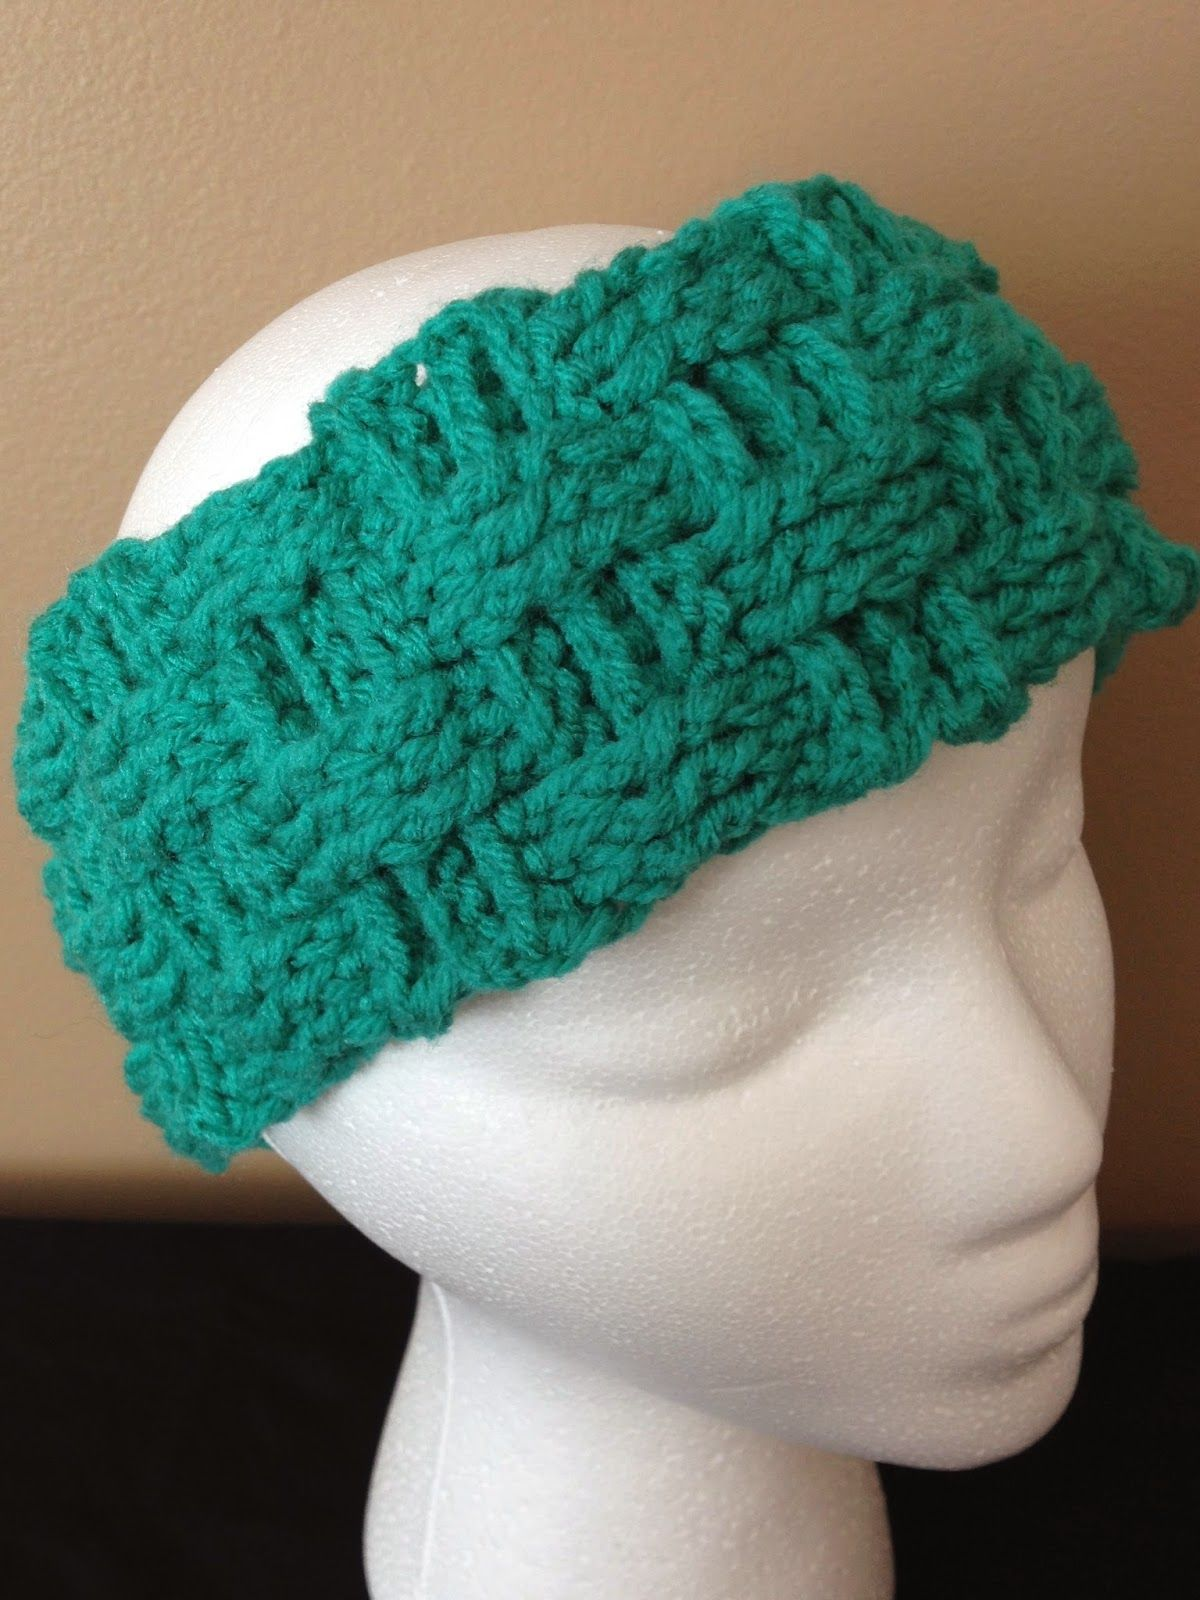 My Crocheted World: Basket Weave Ear Warmer Free Pattern! | hat and ...